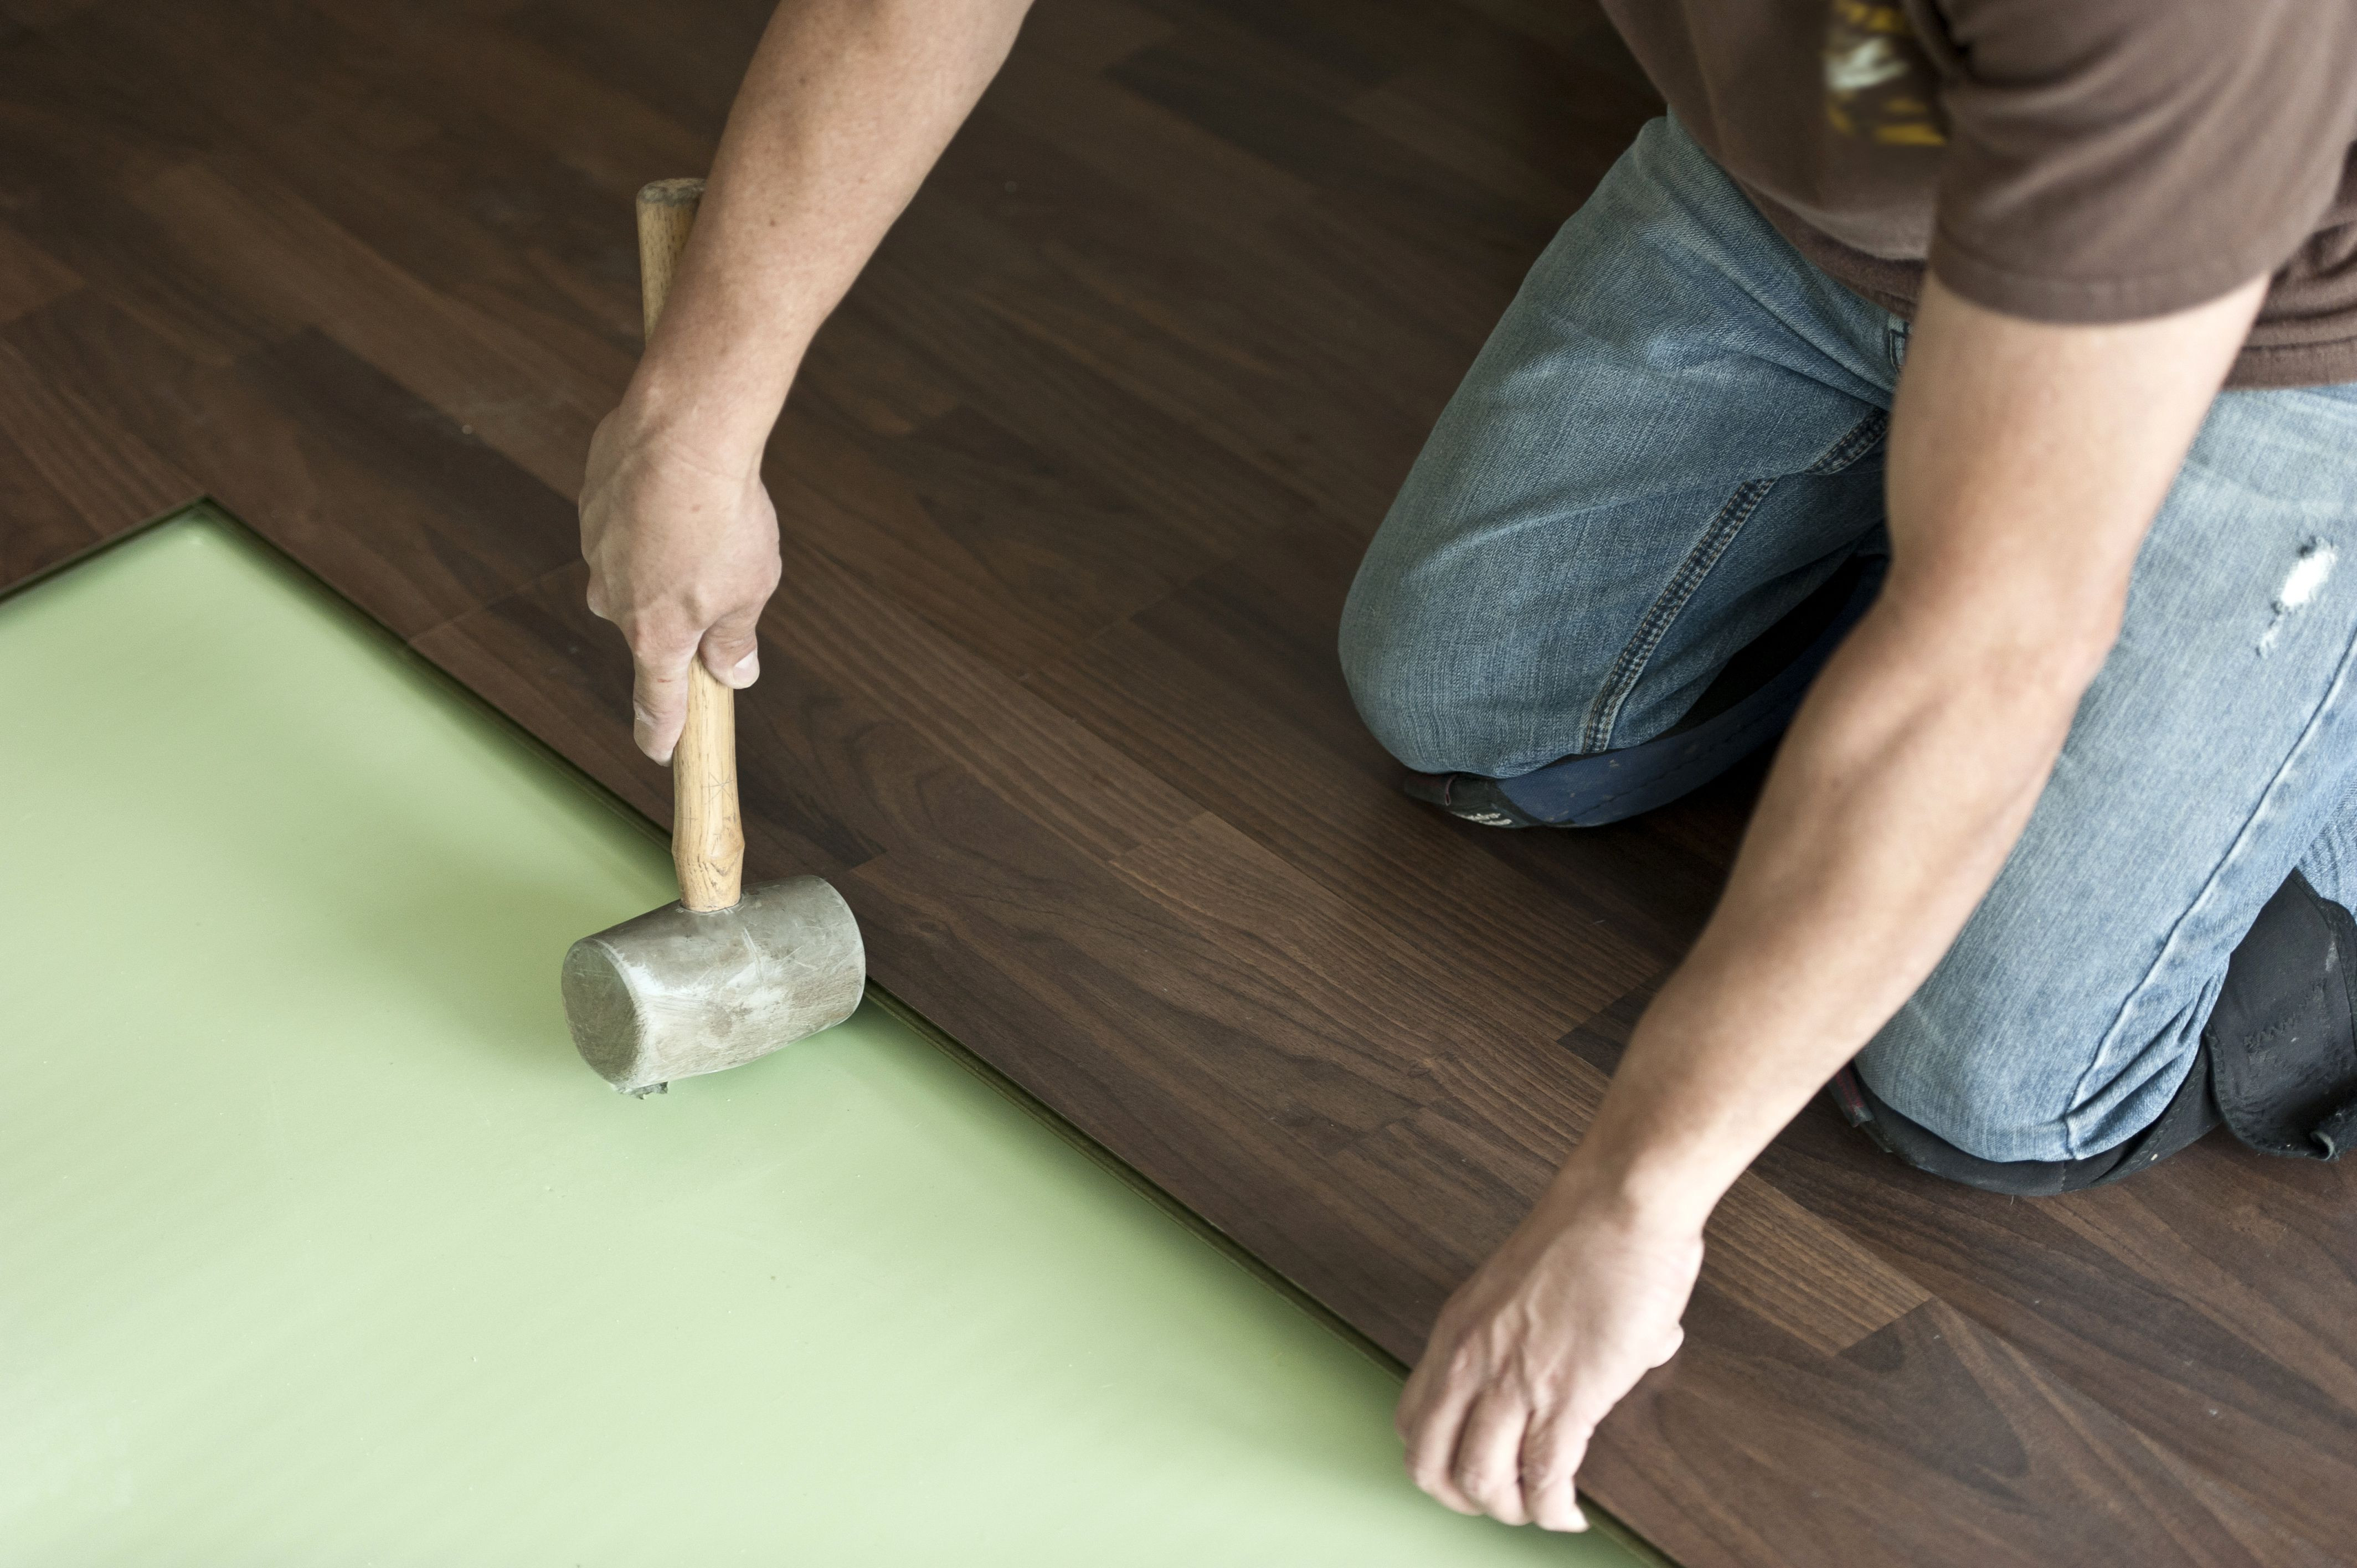 installing floating hardwood floors yourself of can a foam pad be use under solid hardwood flooring for installing hardwood floor 155149312 57e967d45f9b586c35ade84a